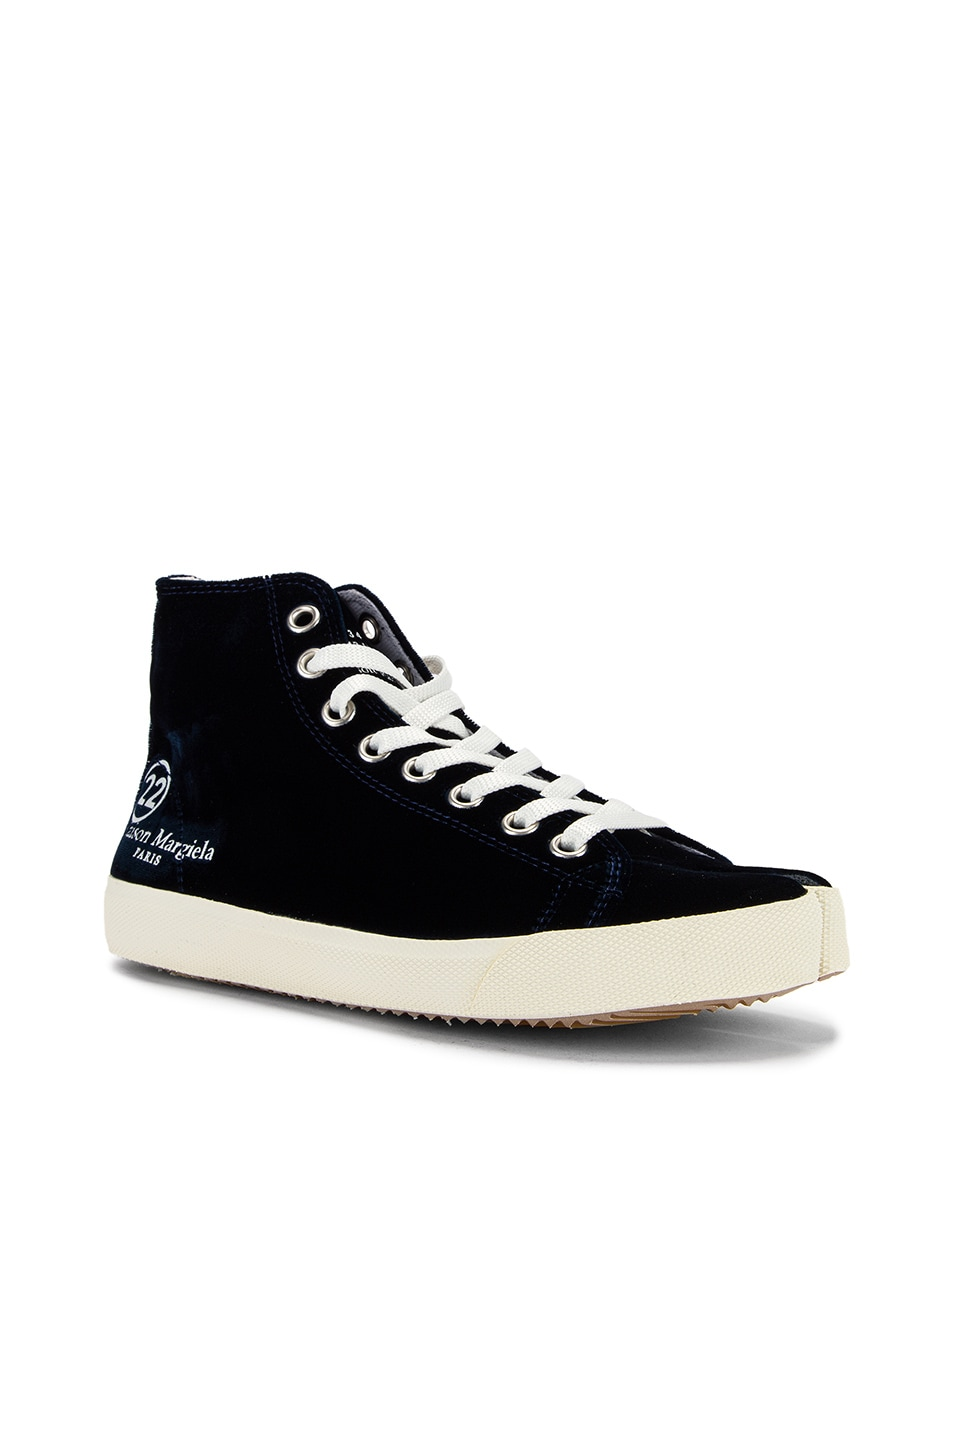 Image 3 of Maison Margiela Toe High Top Sneakers in Navy Blue